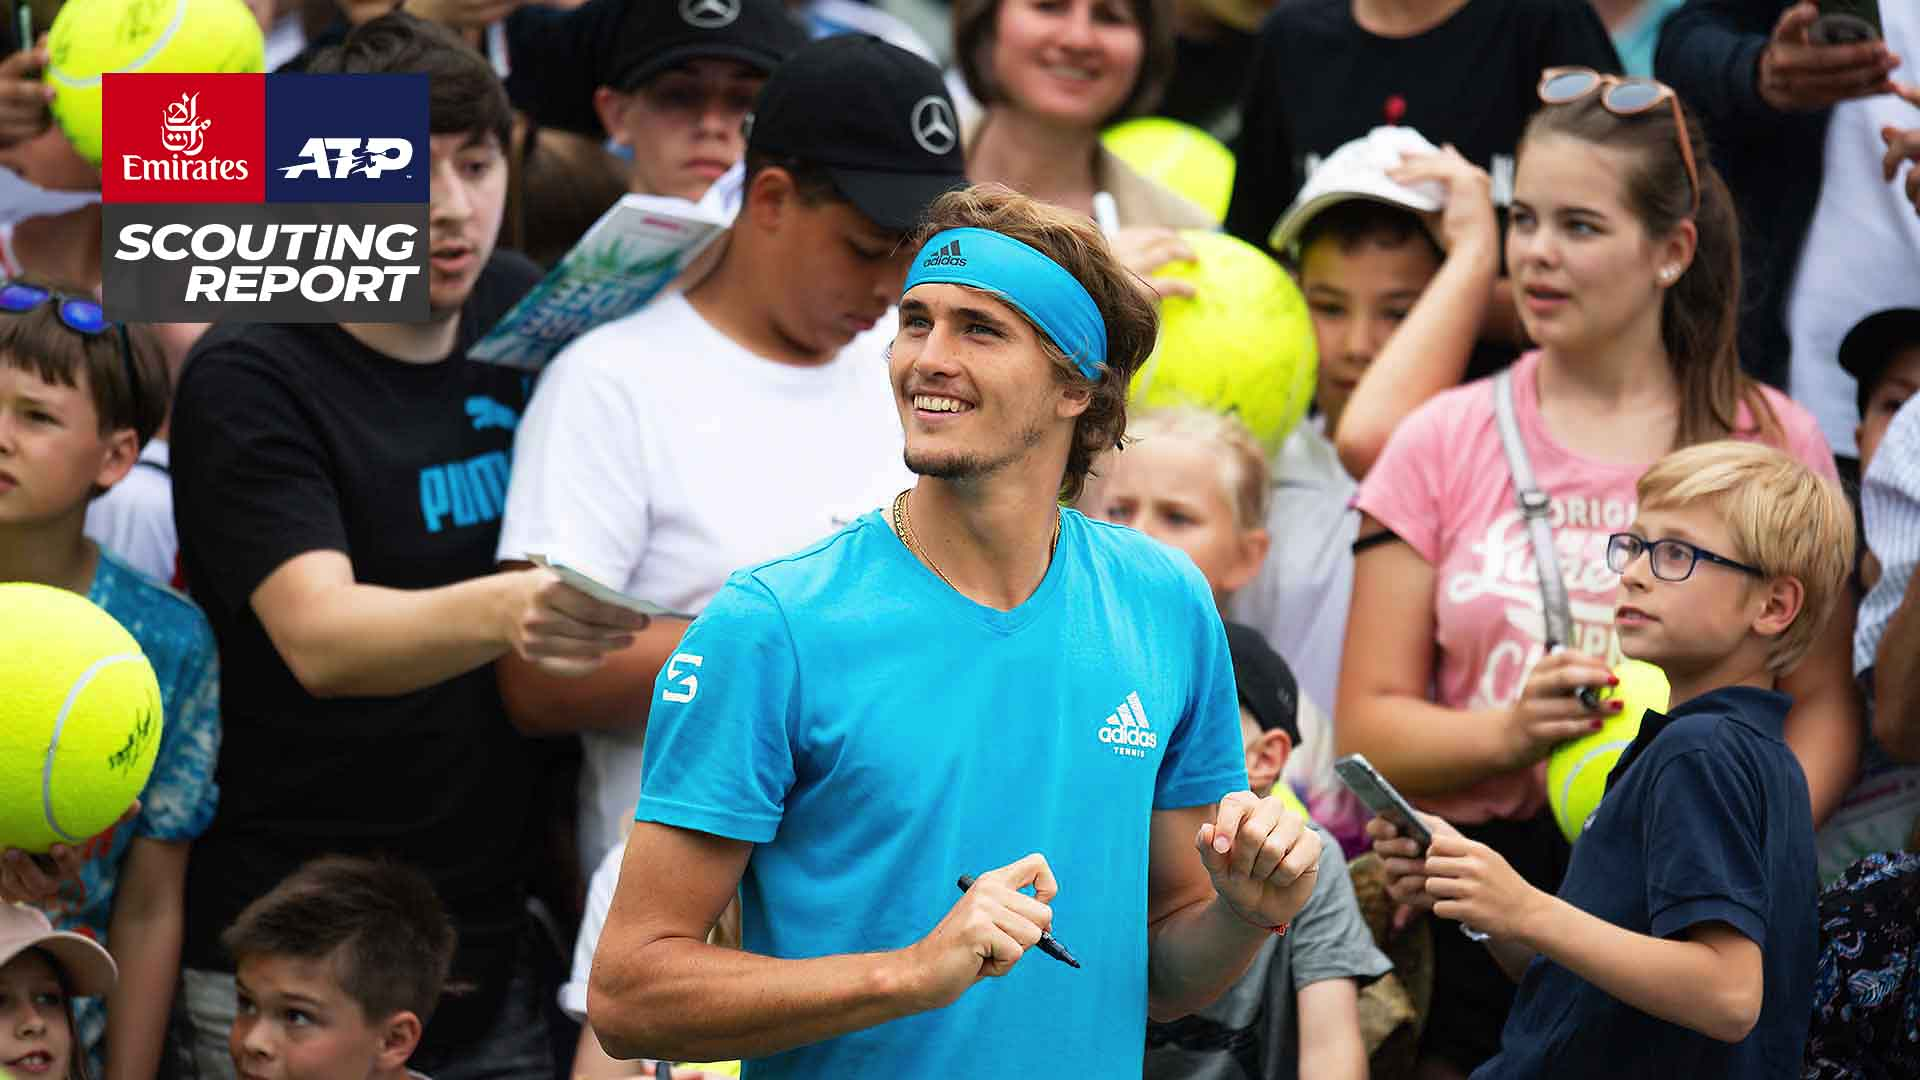 Alexander Zverev is making his third appearance at the MercedesCup.